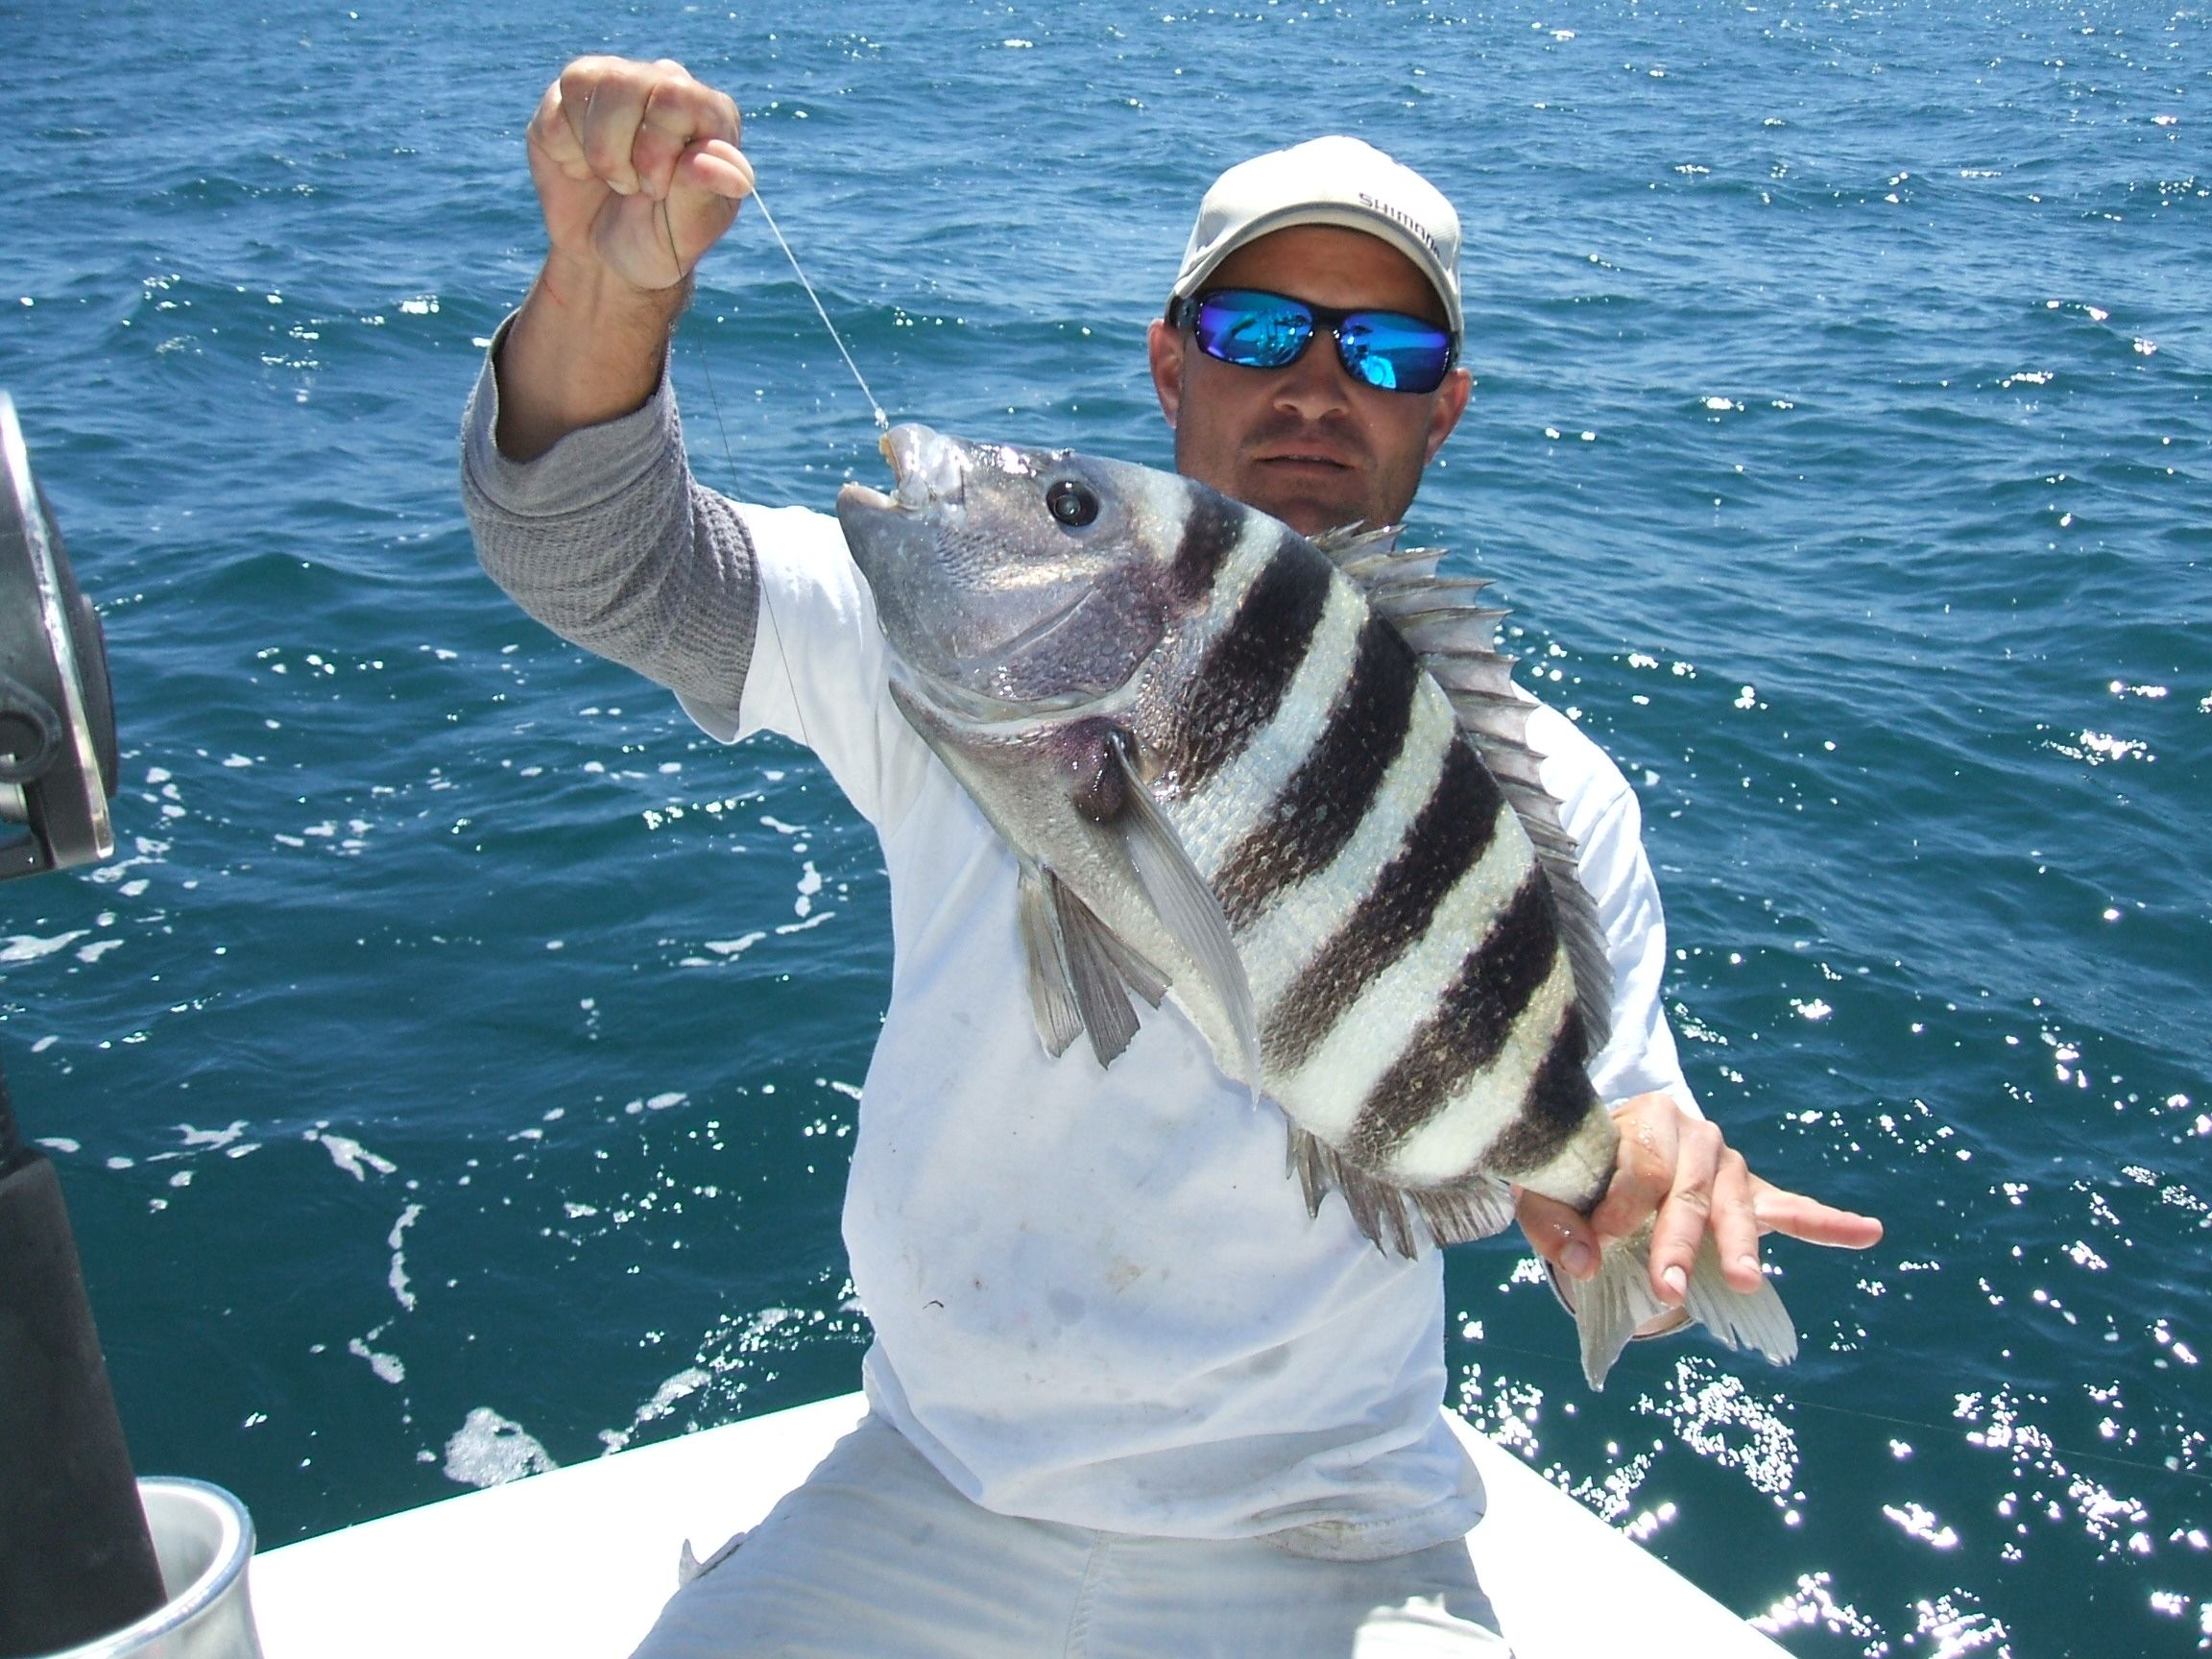 Sheepshead Fish Sheepshead 15 Inches 2 5lbs Sheepshead 17 Inches 4 25 Lbs Sheepshead Florida Fish Fish Pictures